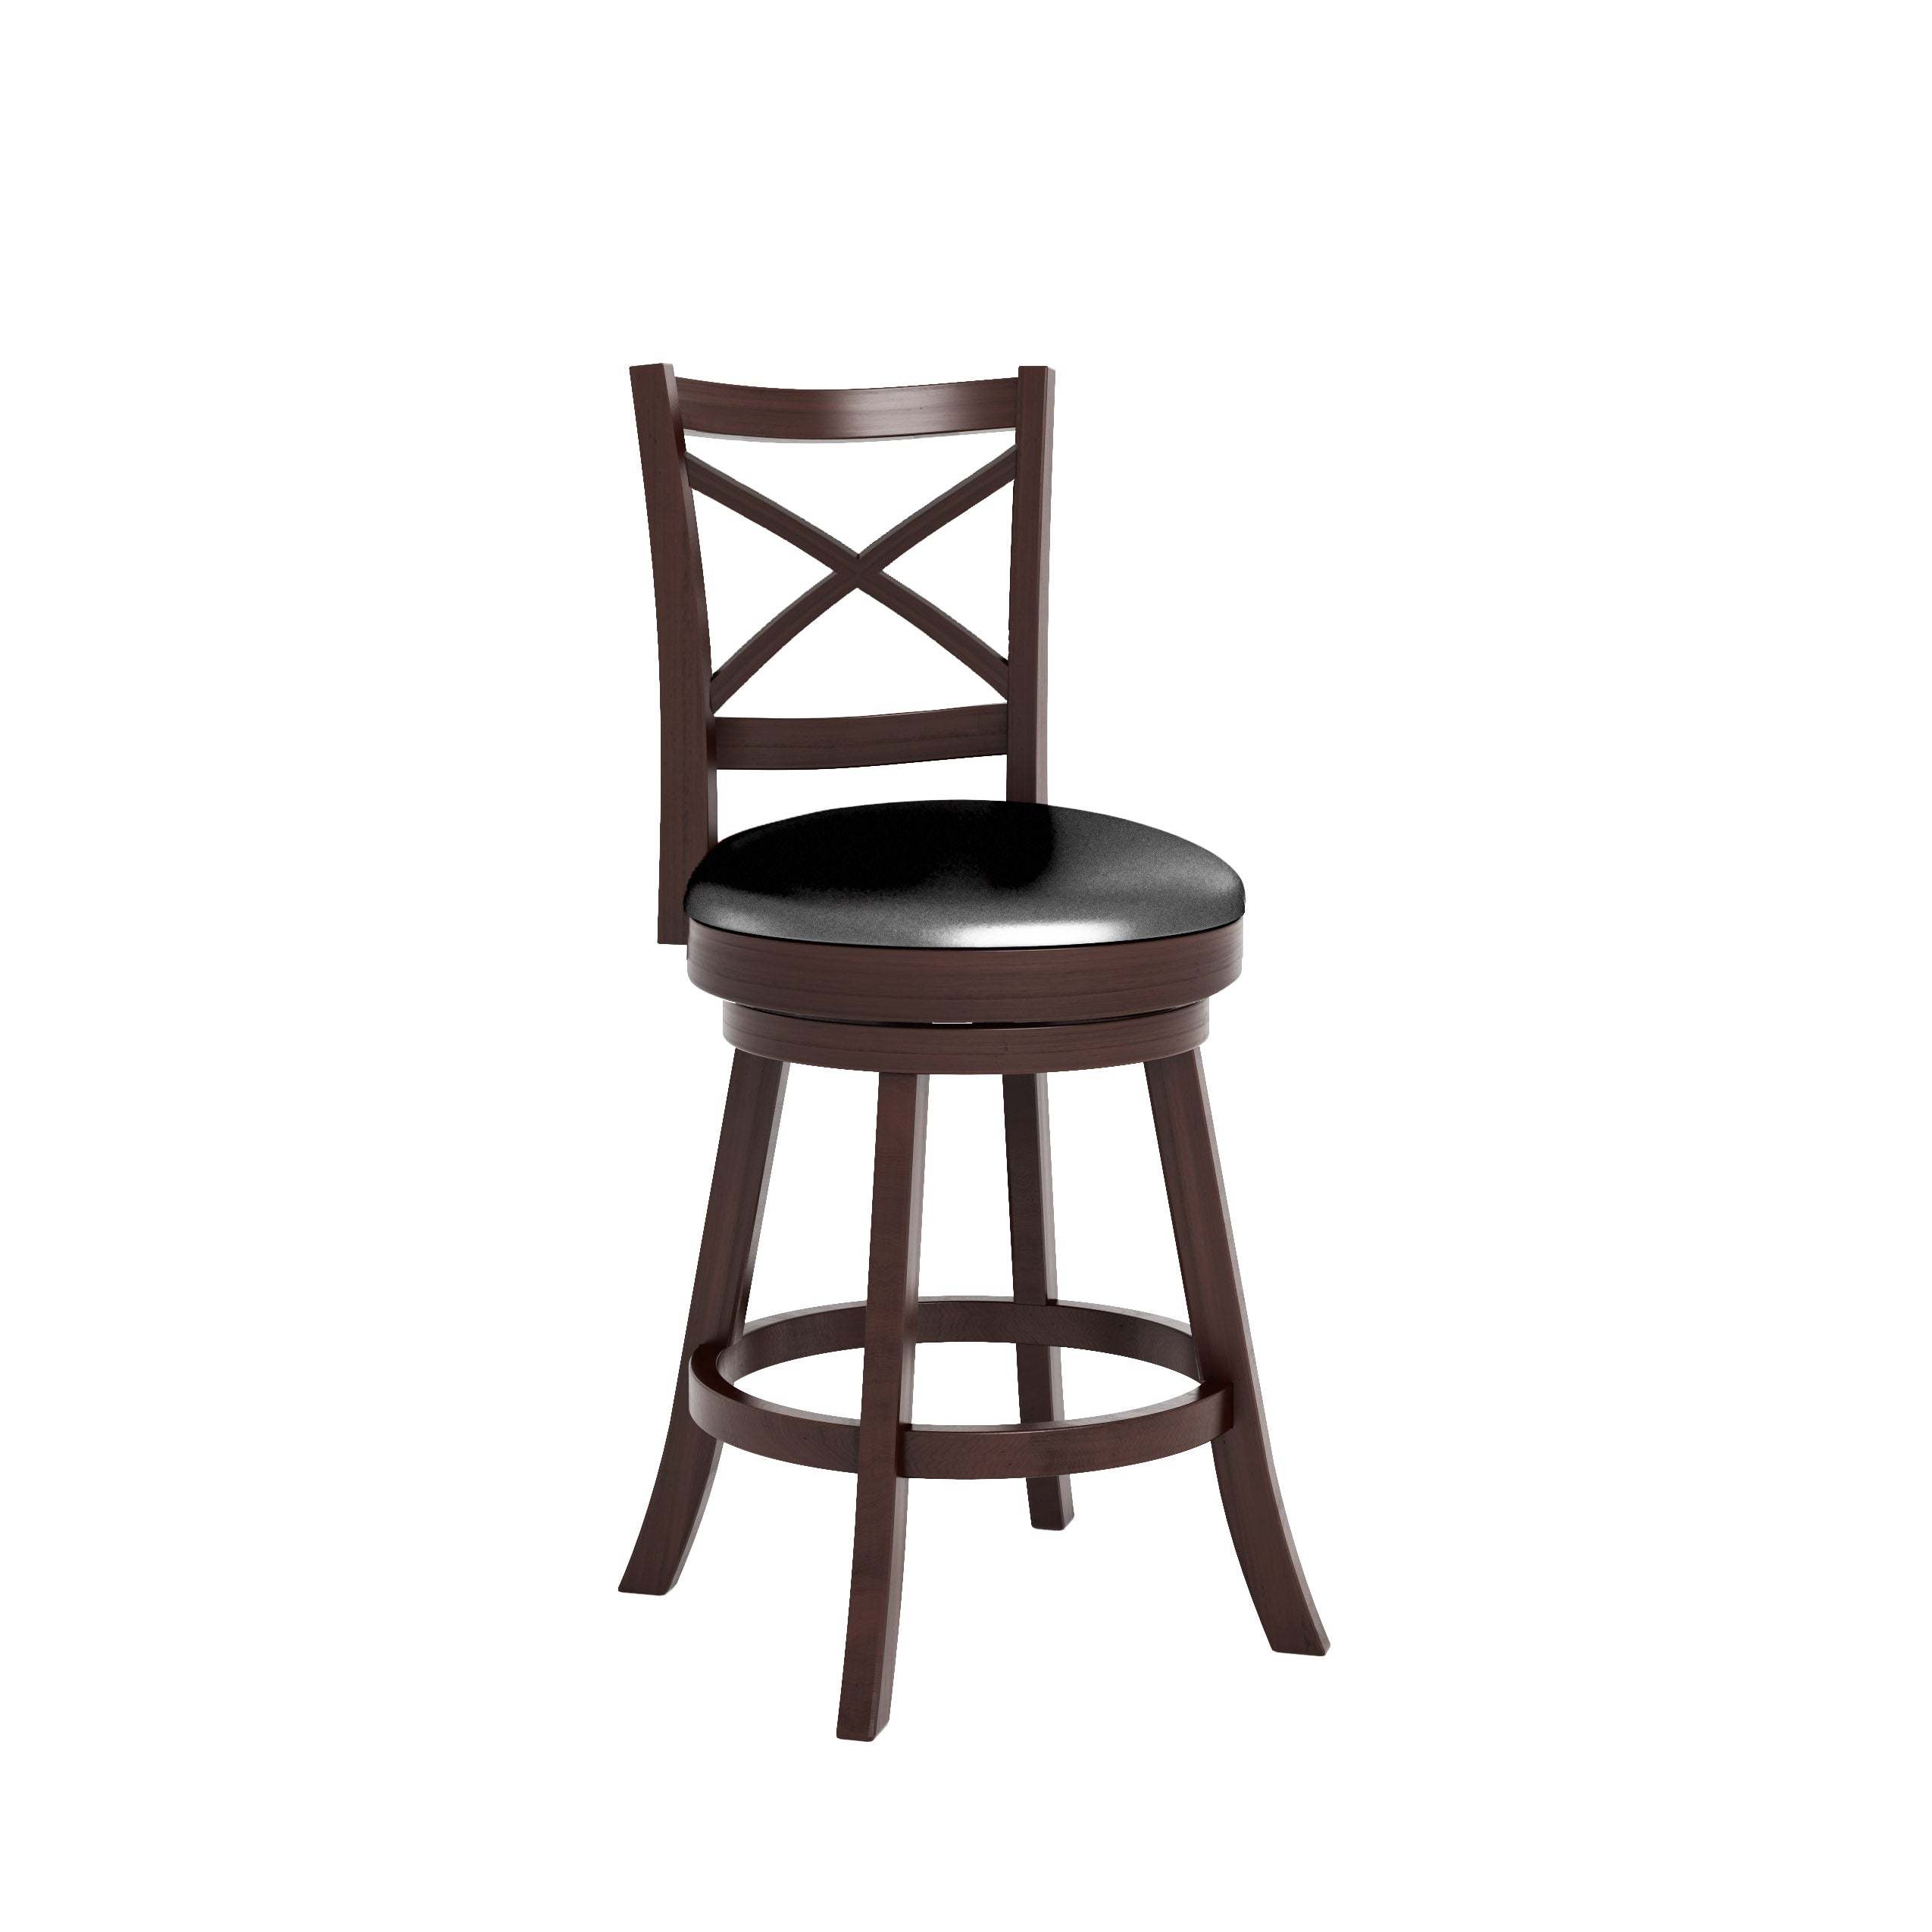 Picture of: Woodgrove Cross Back Counter Height Bar Stool In Espresso And Black Fa Corliving Furniture Us